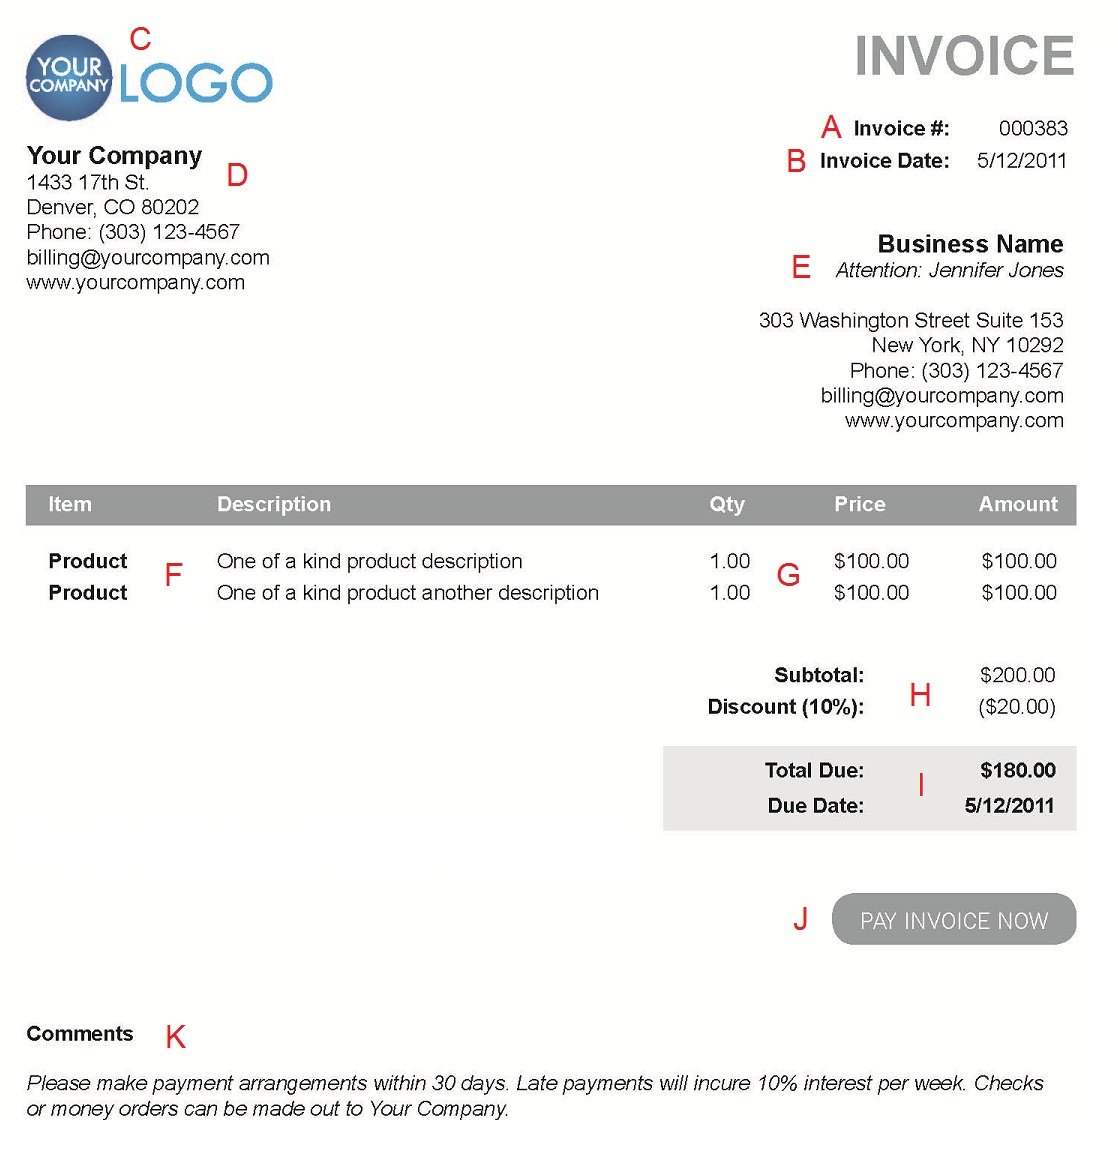 Shopdesignsus  Remarkable The  Different Sections Of An Electronic Payment Invoice With Great A  With Archaic Ups Commercial Invoice Template Also Linux Invoice Software In Addition Pending Invoices And Google Docs Invoices As Well As Legal Invoice Sample Additionally How To Organize Invoices From Paysimplecom With Shopdesignsus  Great The  Different Sections Of An Electronic Payment Invoice With Archaic A  And Remarkable Ups Commercial Invoice Template Also Linux Invoice Software In Addition Pending Invoices From Paysimplecom